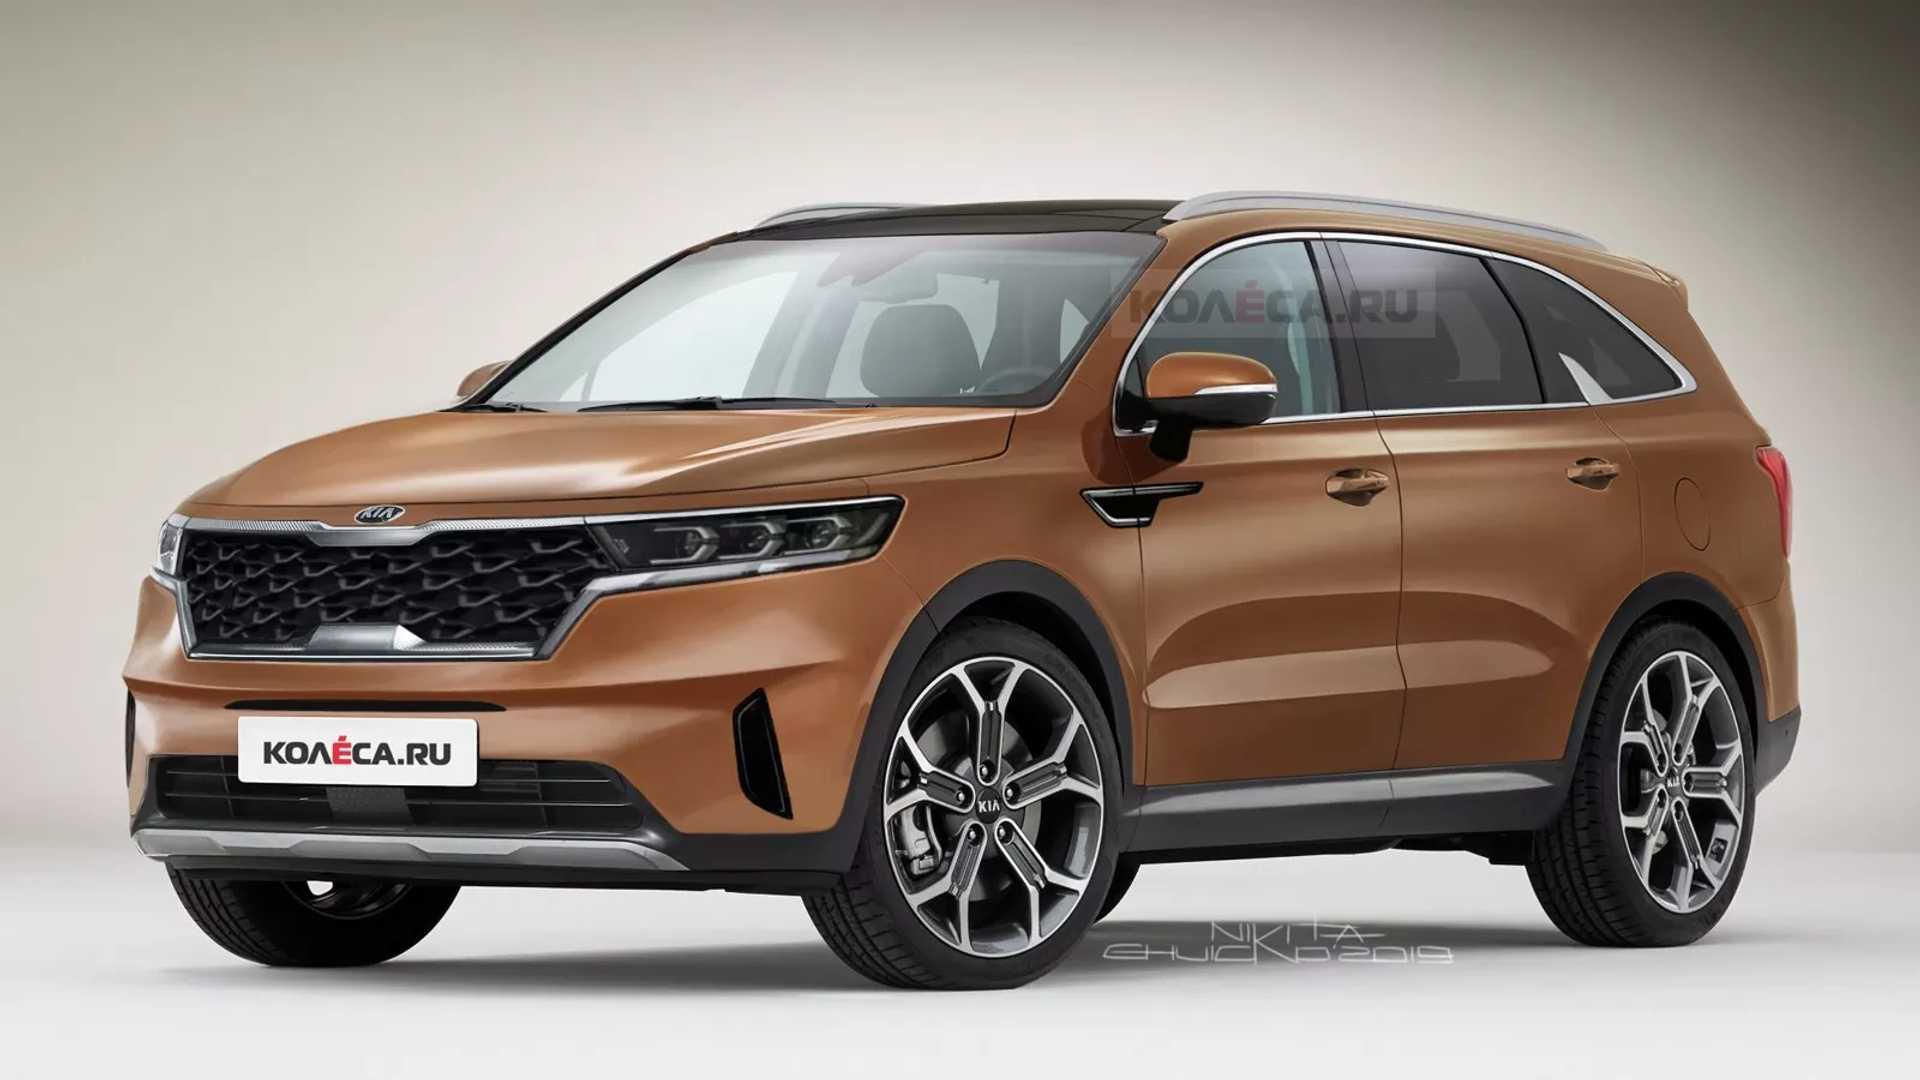 2021 Kia Sorento Rendered To Imagine Upcoming Crossover - 2022 Kia Sedona Interior, Specs Update, Rumor Release, Change